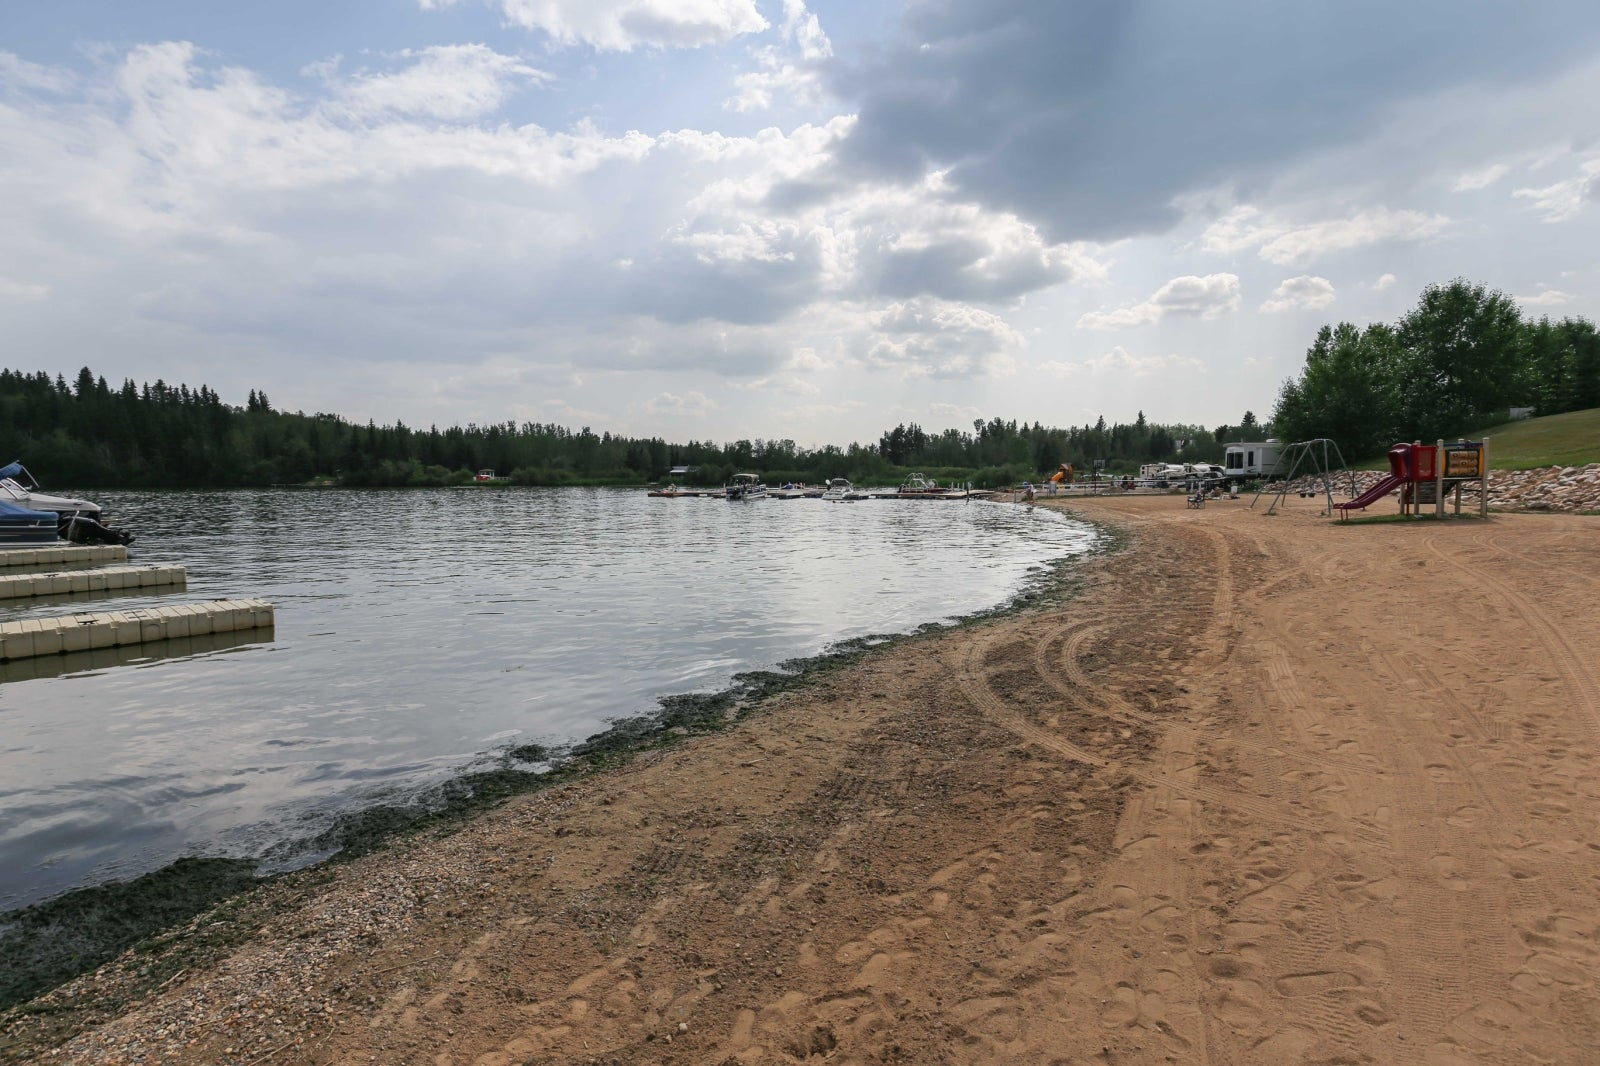 6084, 25054 SOUTH PINE LAKE Road - Whispering Pines Residential Land for sale(A1100818) #12